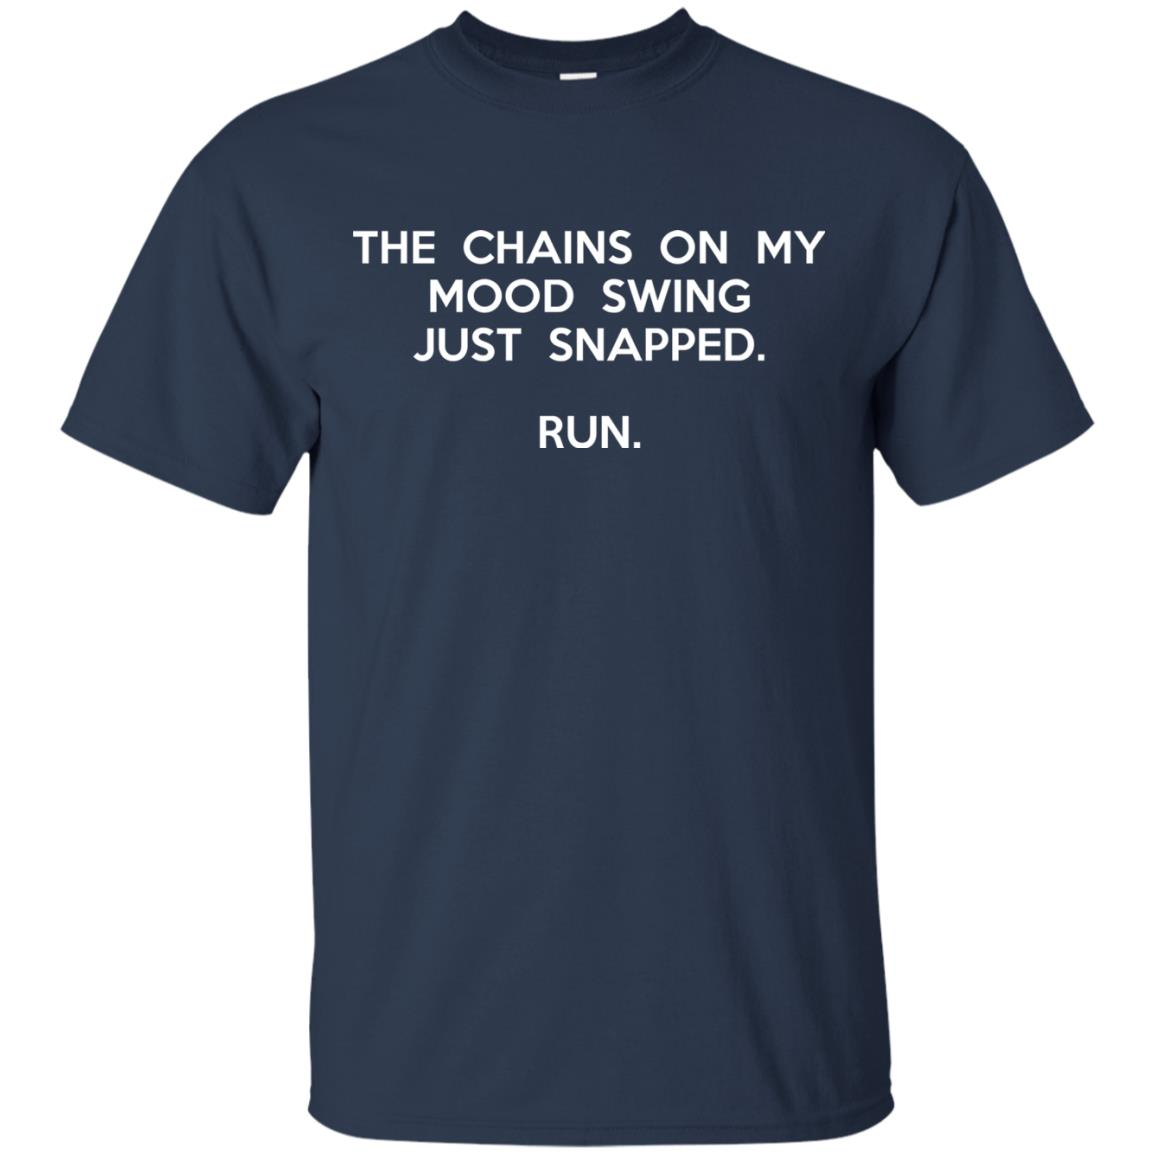 image 2938 - The chains on my mood swing just snapped shirt